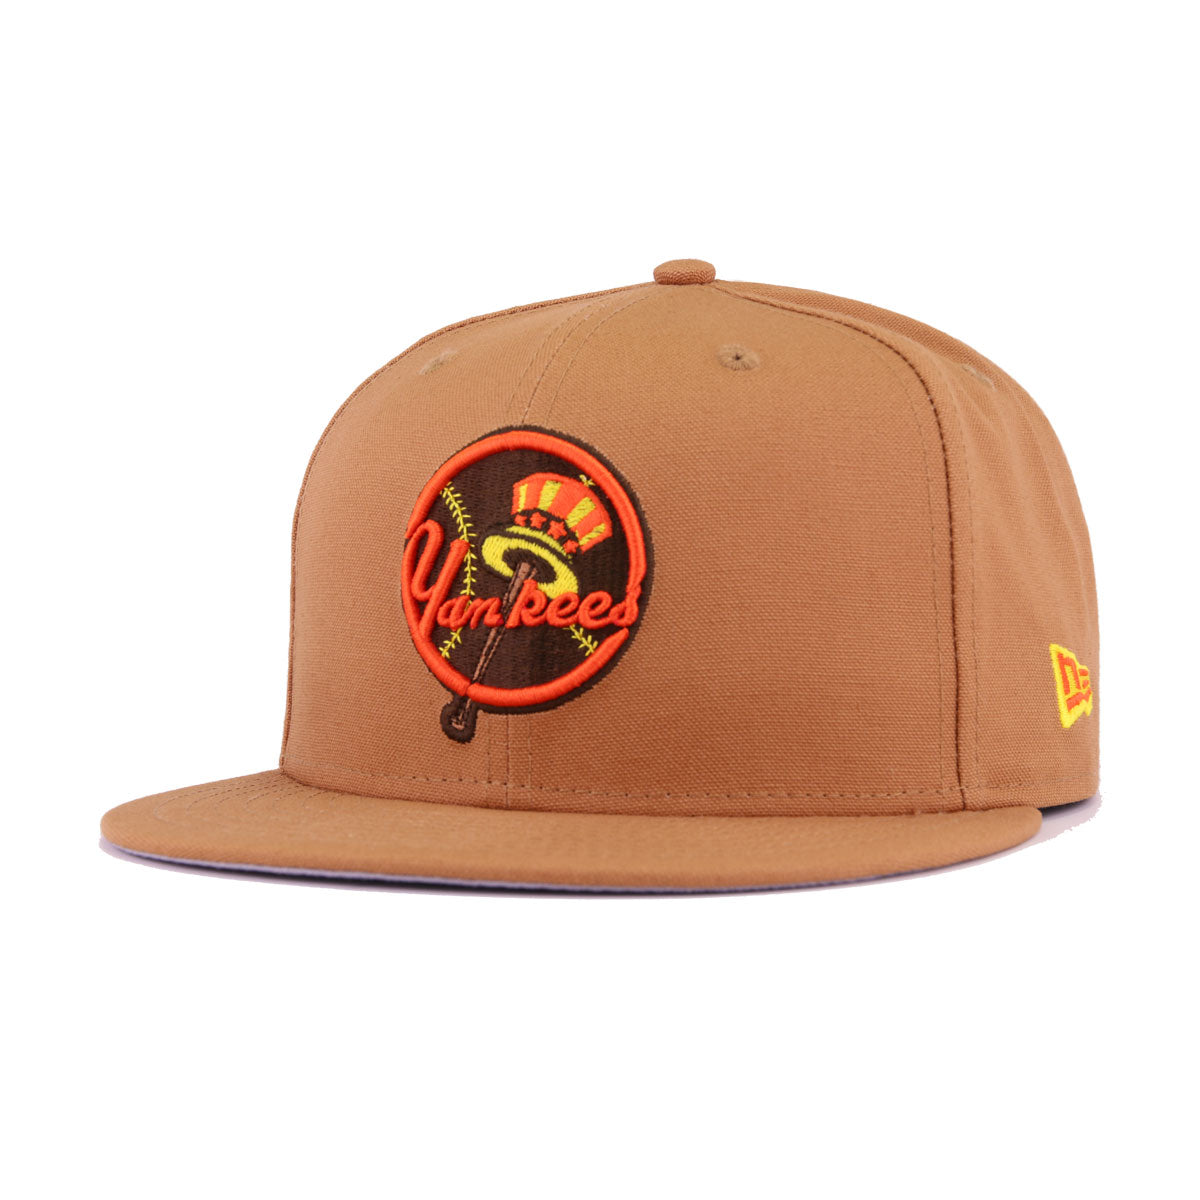 New York Yankees Light Bronze Cotton Canvas New Era 9Fifty Snapback